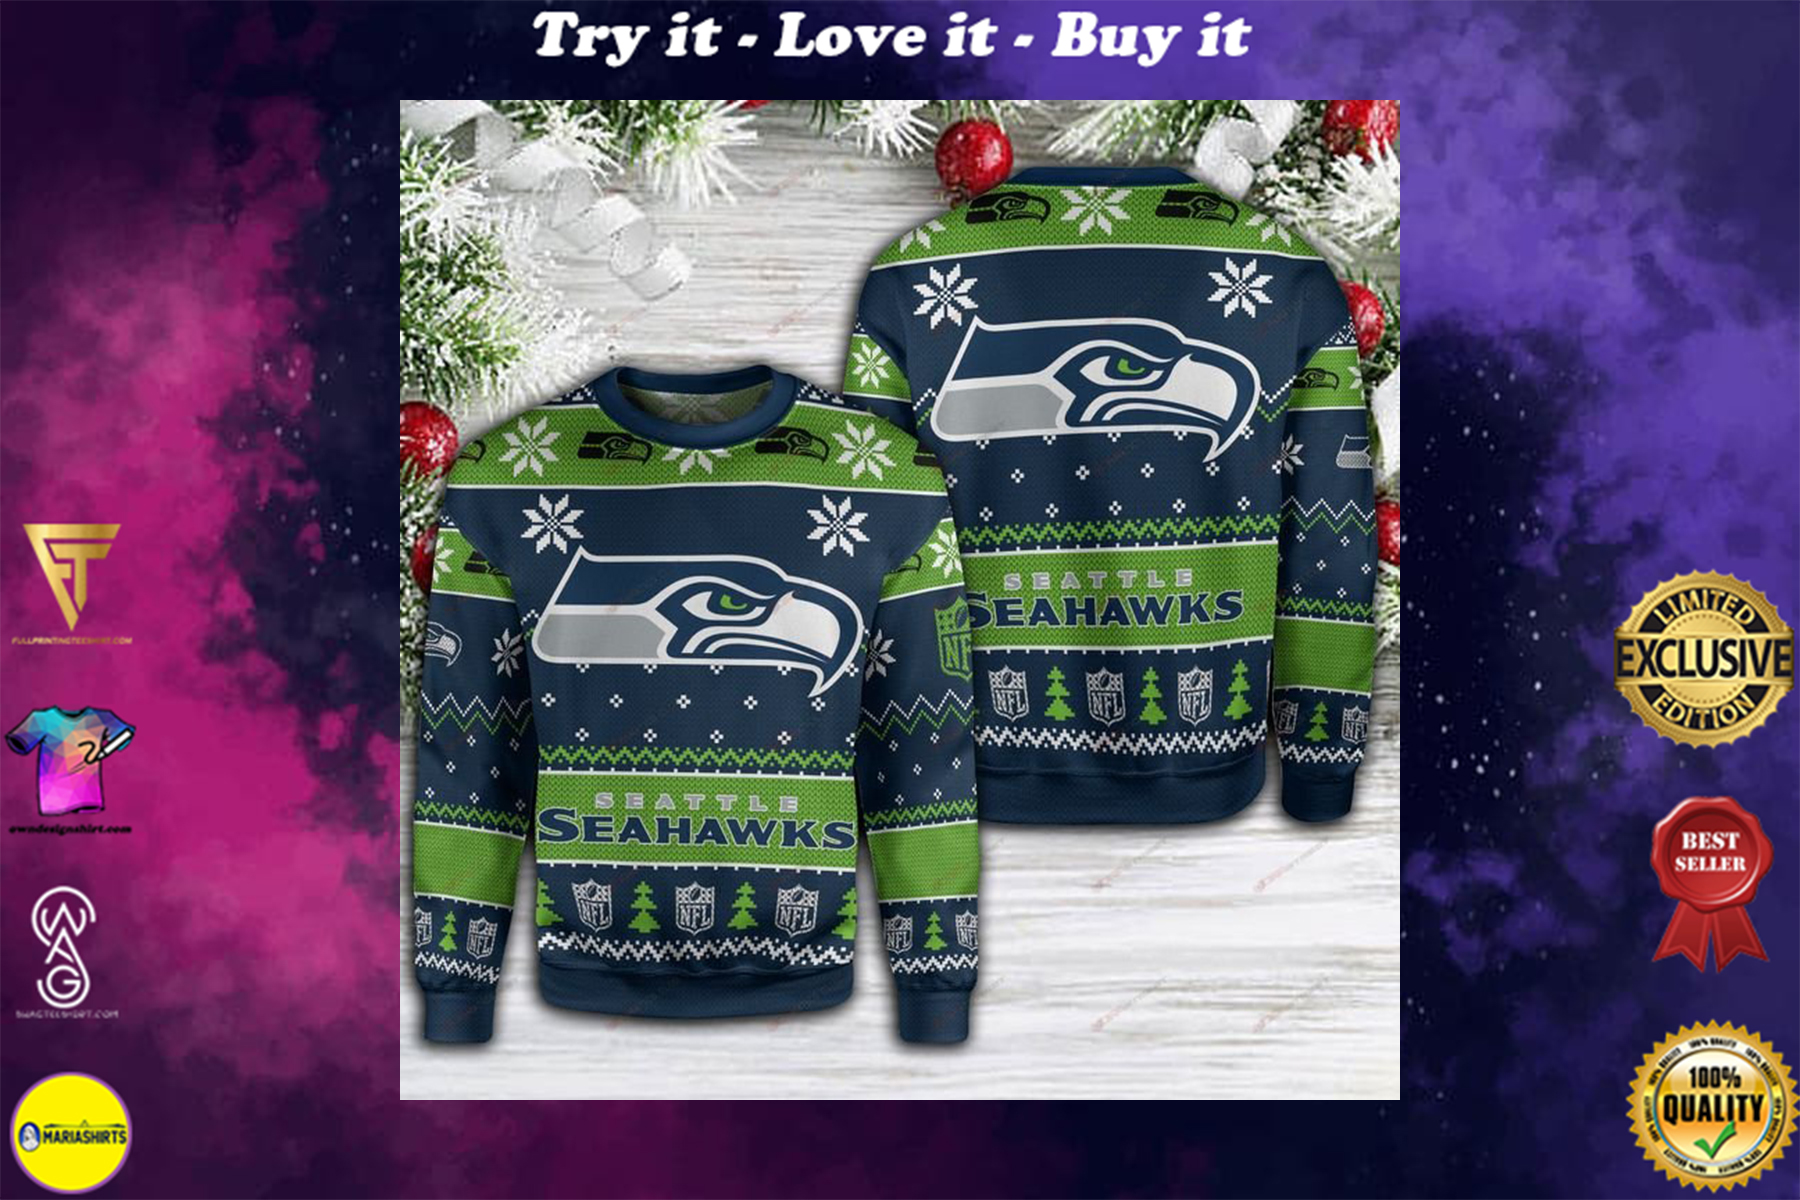 [special edition] seatle seahawks football full printing ugly sweater - maria